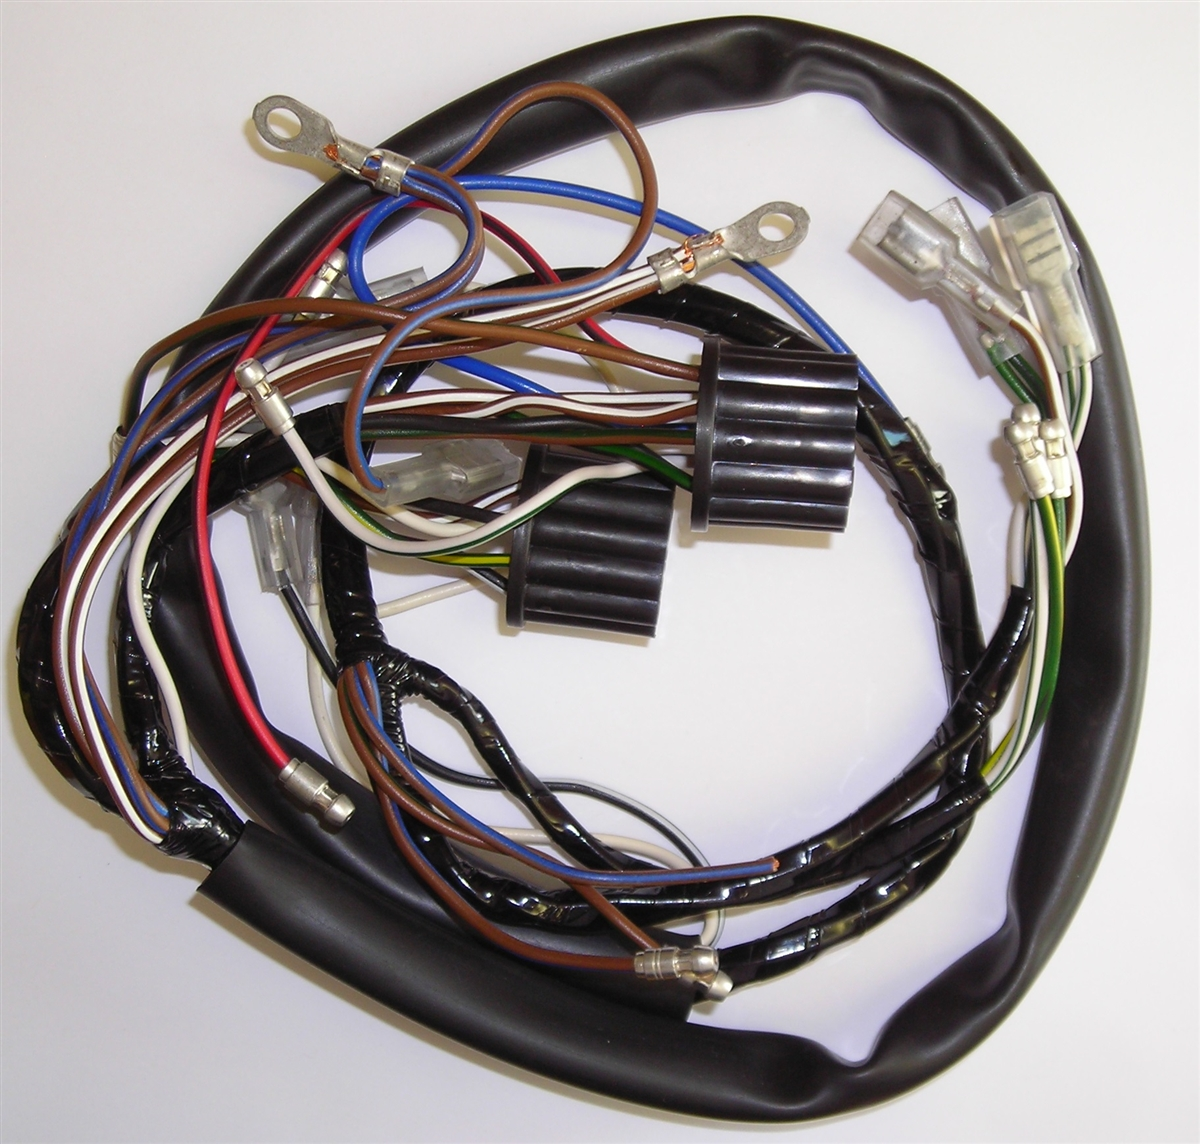 MC123PP 2?1374673704 motorcycle wiring harness motorcycle wire harness tape at mifinder.co